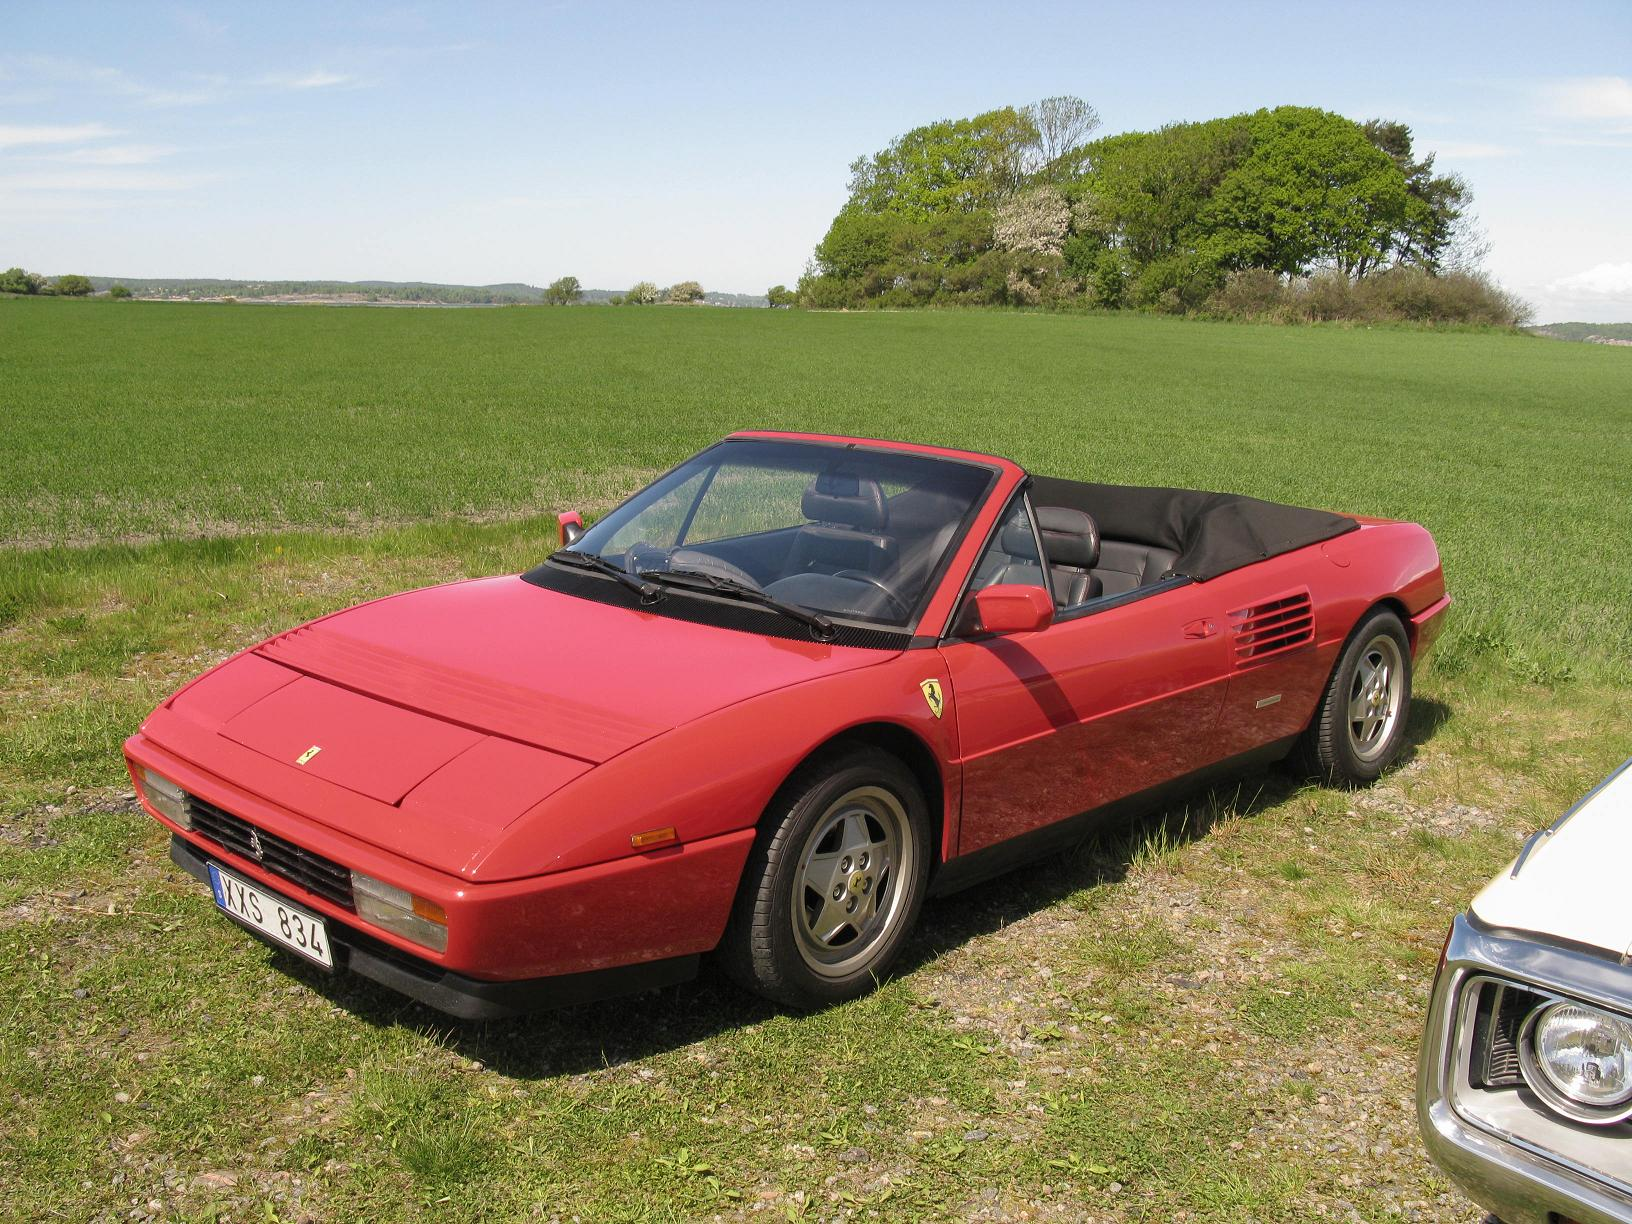 ferrari mondial t spider ferrari mondial spider 1988 ferrari mondial used ferrari ferrari. Black Bedroom Furniture Sets. Home Design Ideas